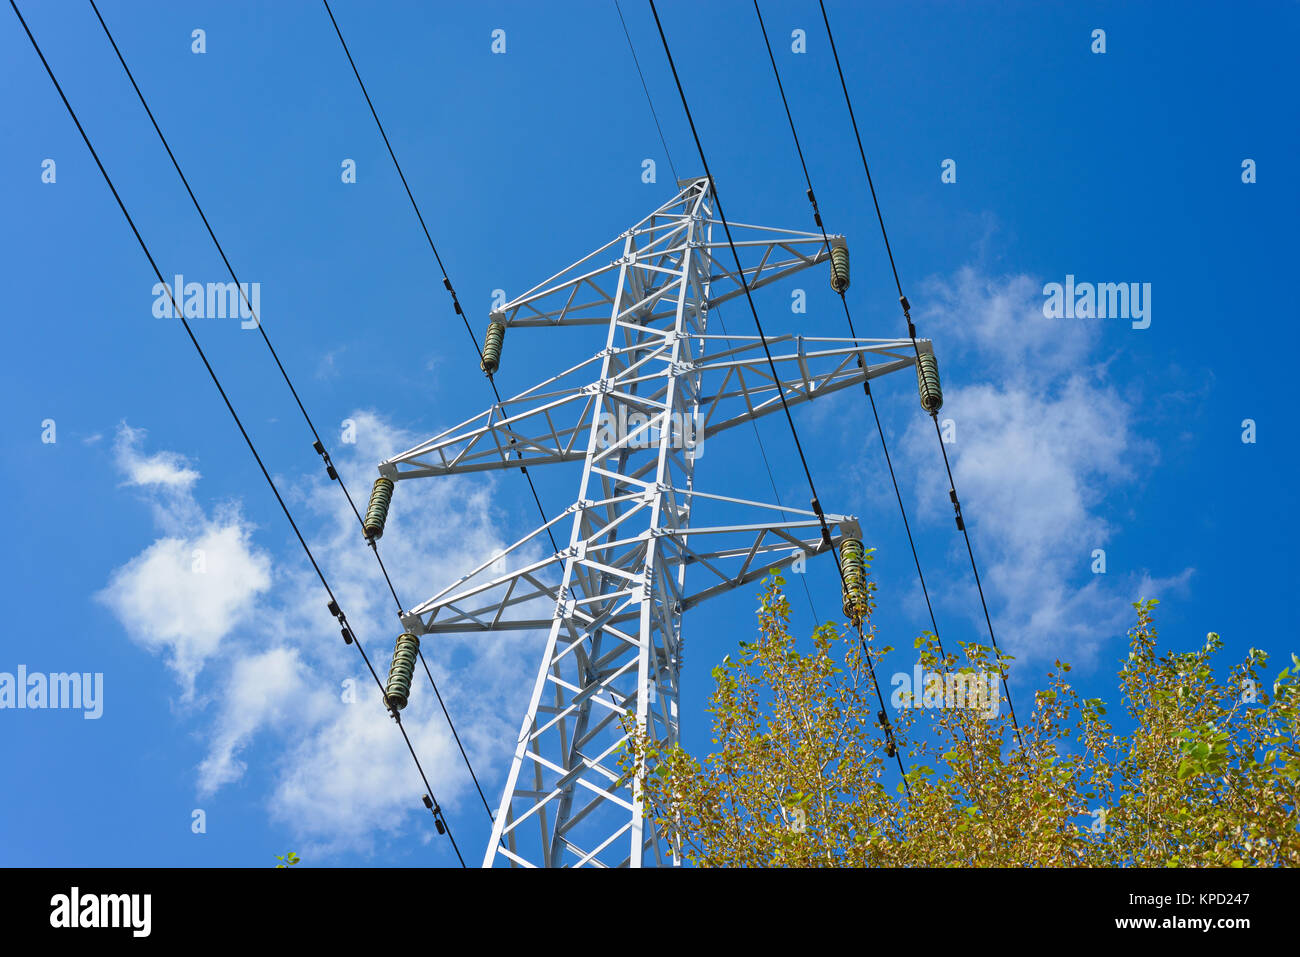 Overhead Line Equipment Stock Photos & Overhead Line Equipment ...